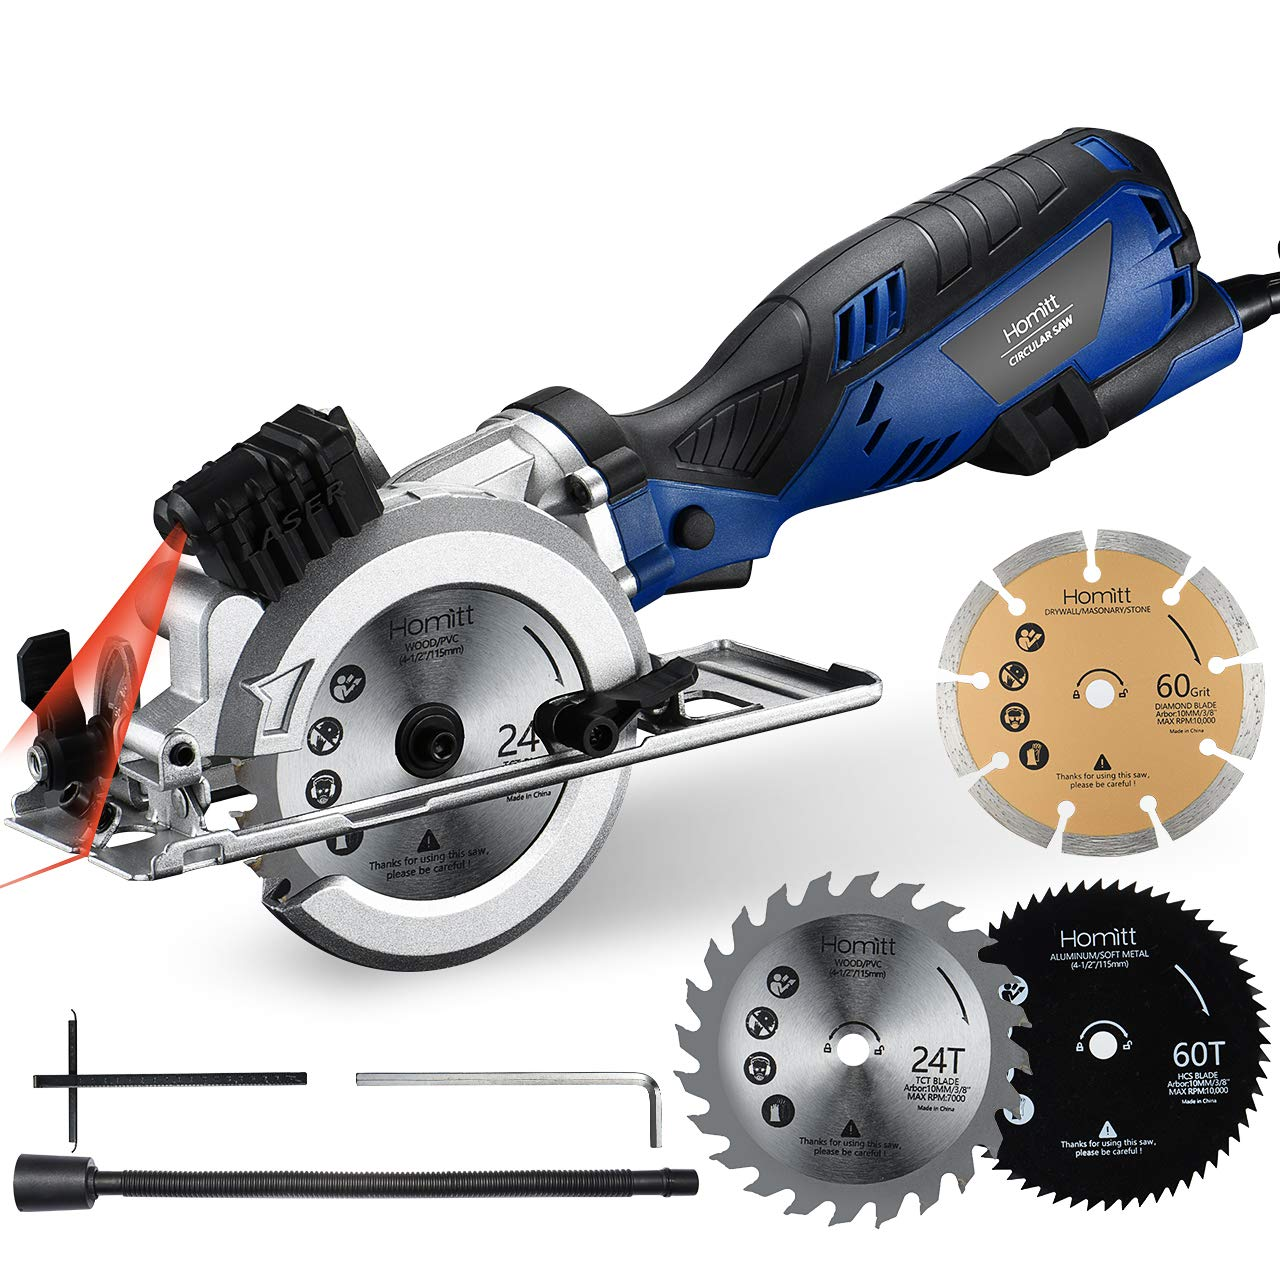 Circular Saw, Homitt 5.8A 3500RPM Compact Saw with Laser Guide, 3 Saw Blades 4-1 2 , Max Cutting Depth 1-11 16 90 , 1-1 8 45 , Ideal for Soft Metal, PVC, Wood, Tile and Plastic Cuts